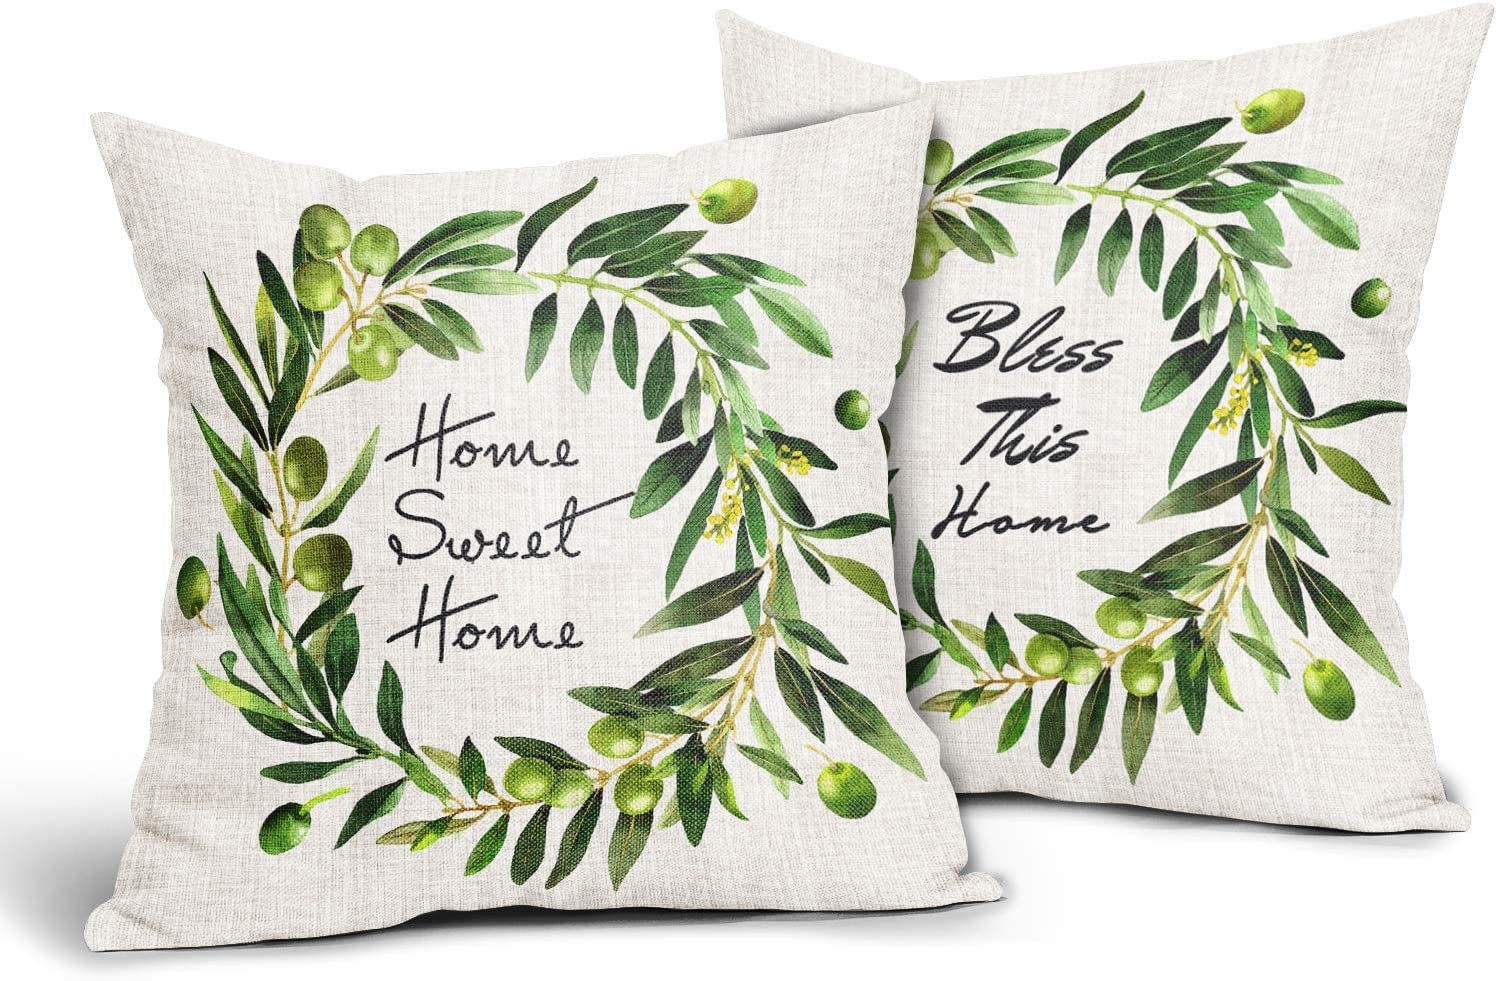 Olive Wreath Pillow Covers Set of 2,Home Sweet Home Green Throw Pillows 18x18 Vintage Farmhouse Decorative Square Cushion Cover Suitable for Men Women Girls Boys Couch Bedroom Livingroom